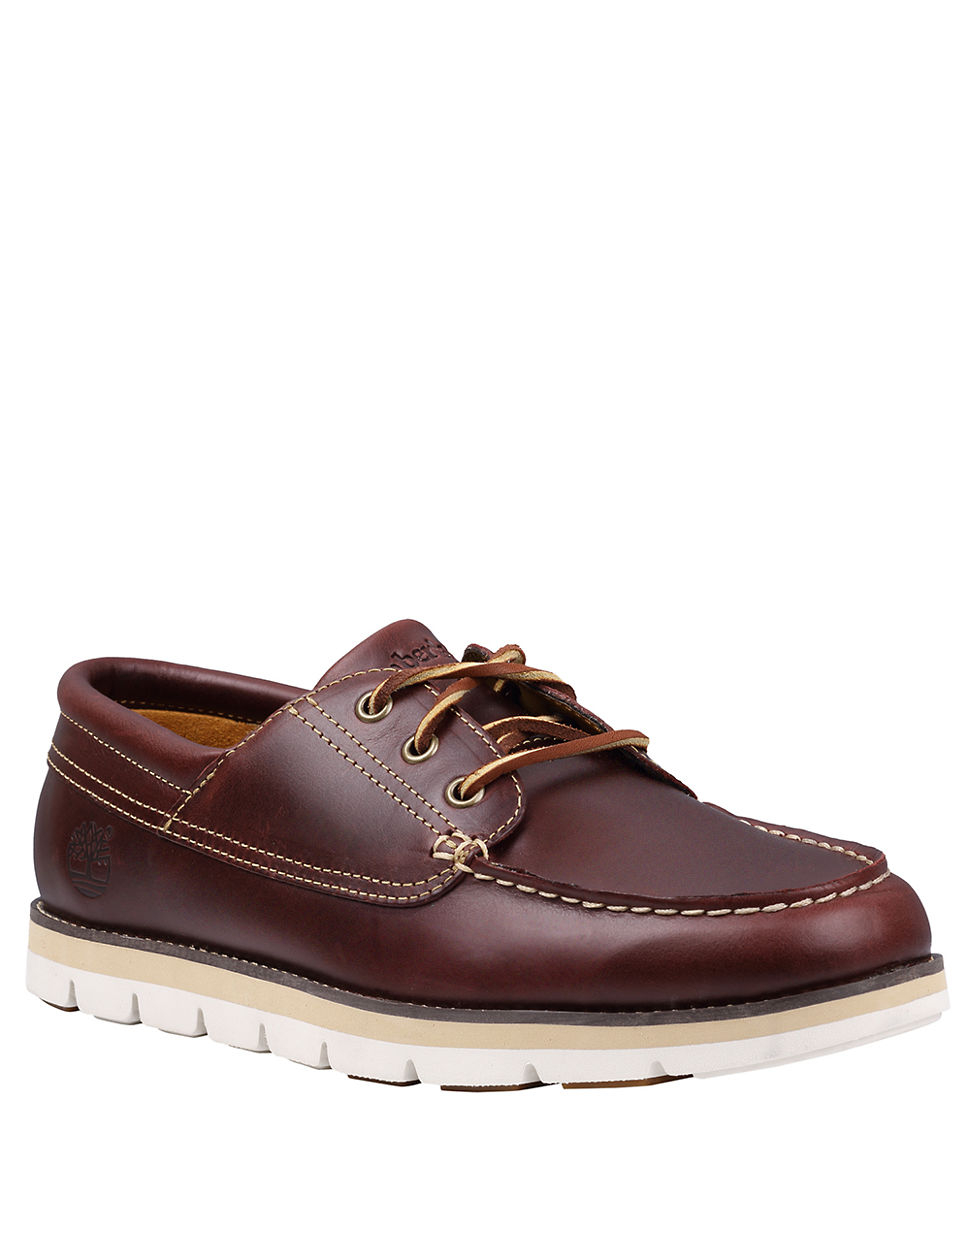 Timberland Earthkeepers Harborside 3eye Leather Oxford in Red for Men (burgundy)   Lyst